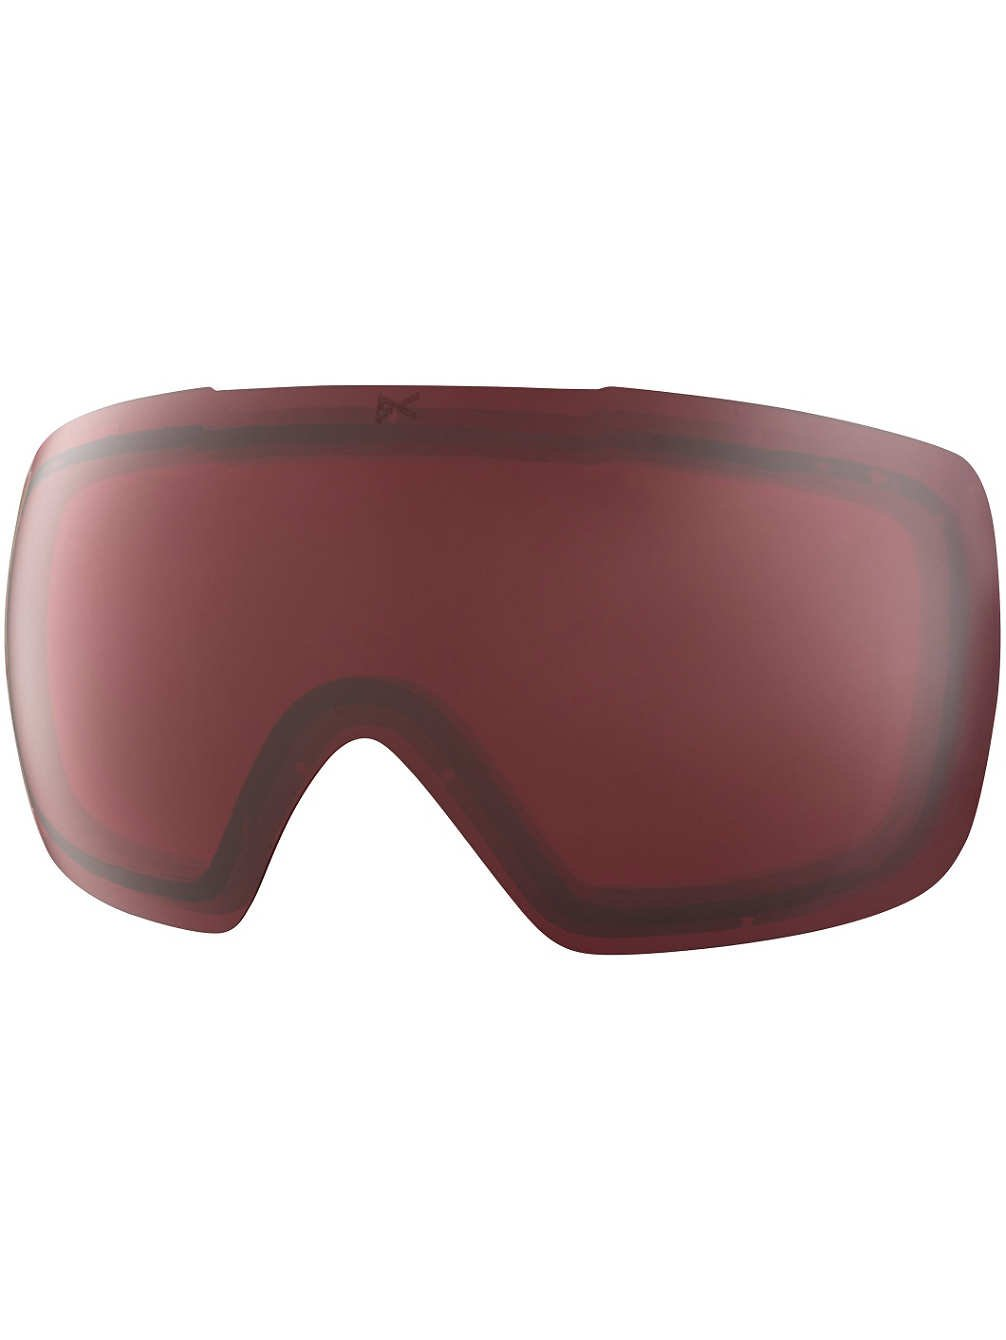 Anon Mig Snow Goggle Replacement Lens Silver Rose 35% VLT